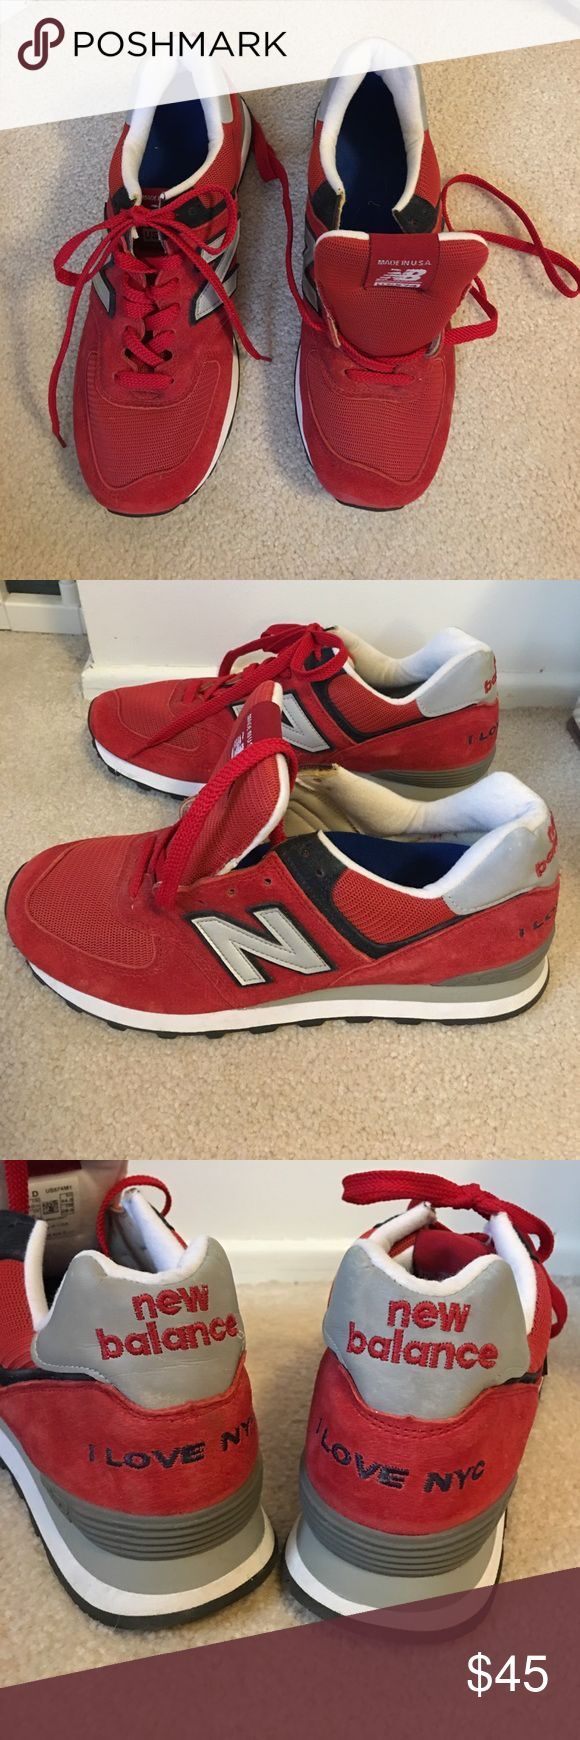 """Men's New Balance Sneakers NEW! Men's size 10 1/2 Men's Limited Edition """"I LOVE NYC"""" Sneakers. Red Suede. New Without Tags. Because they were bought before they were listed in the stores. New Balance Shoes Athletic Shoes"""